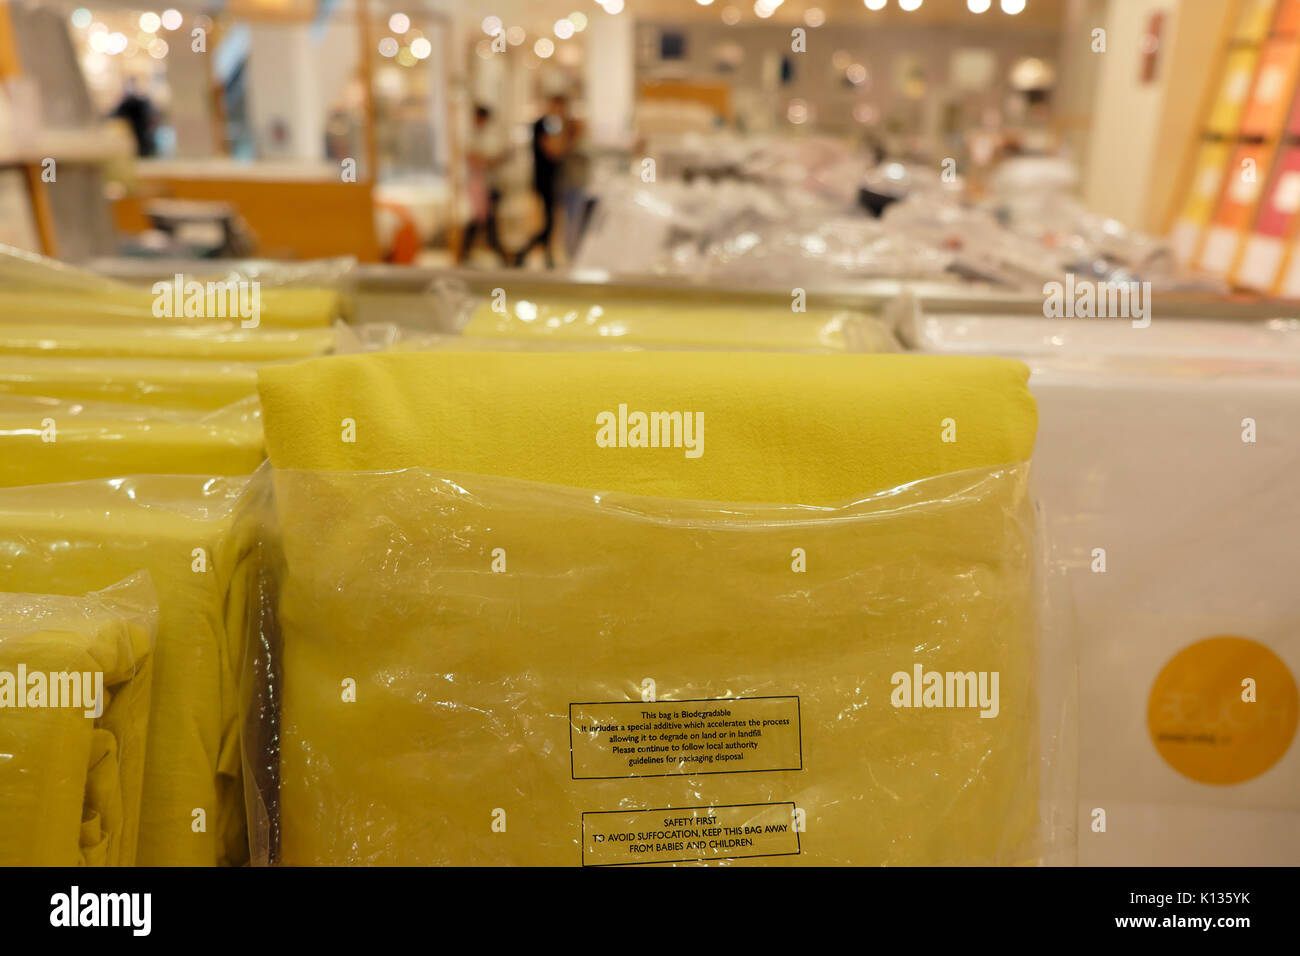 Biodegradable packaging sign destined for landfill on flannelette duvet covers displayed in department store bed linen area UK  KATHY DEWITT - Stock Image